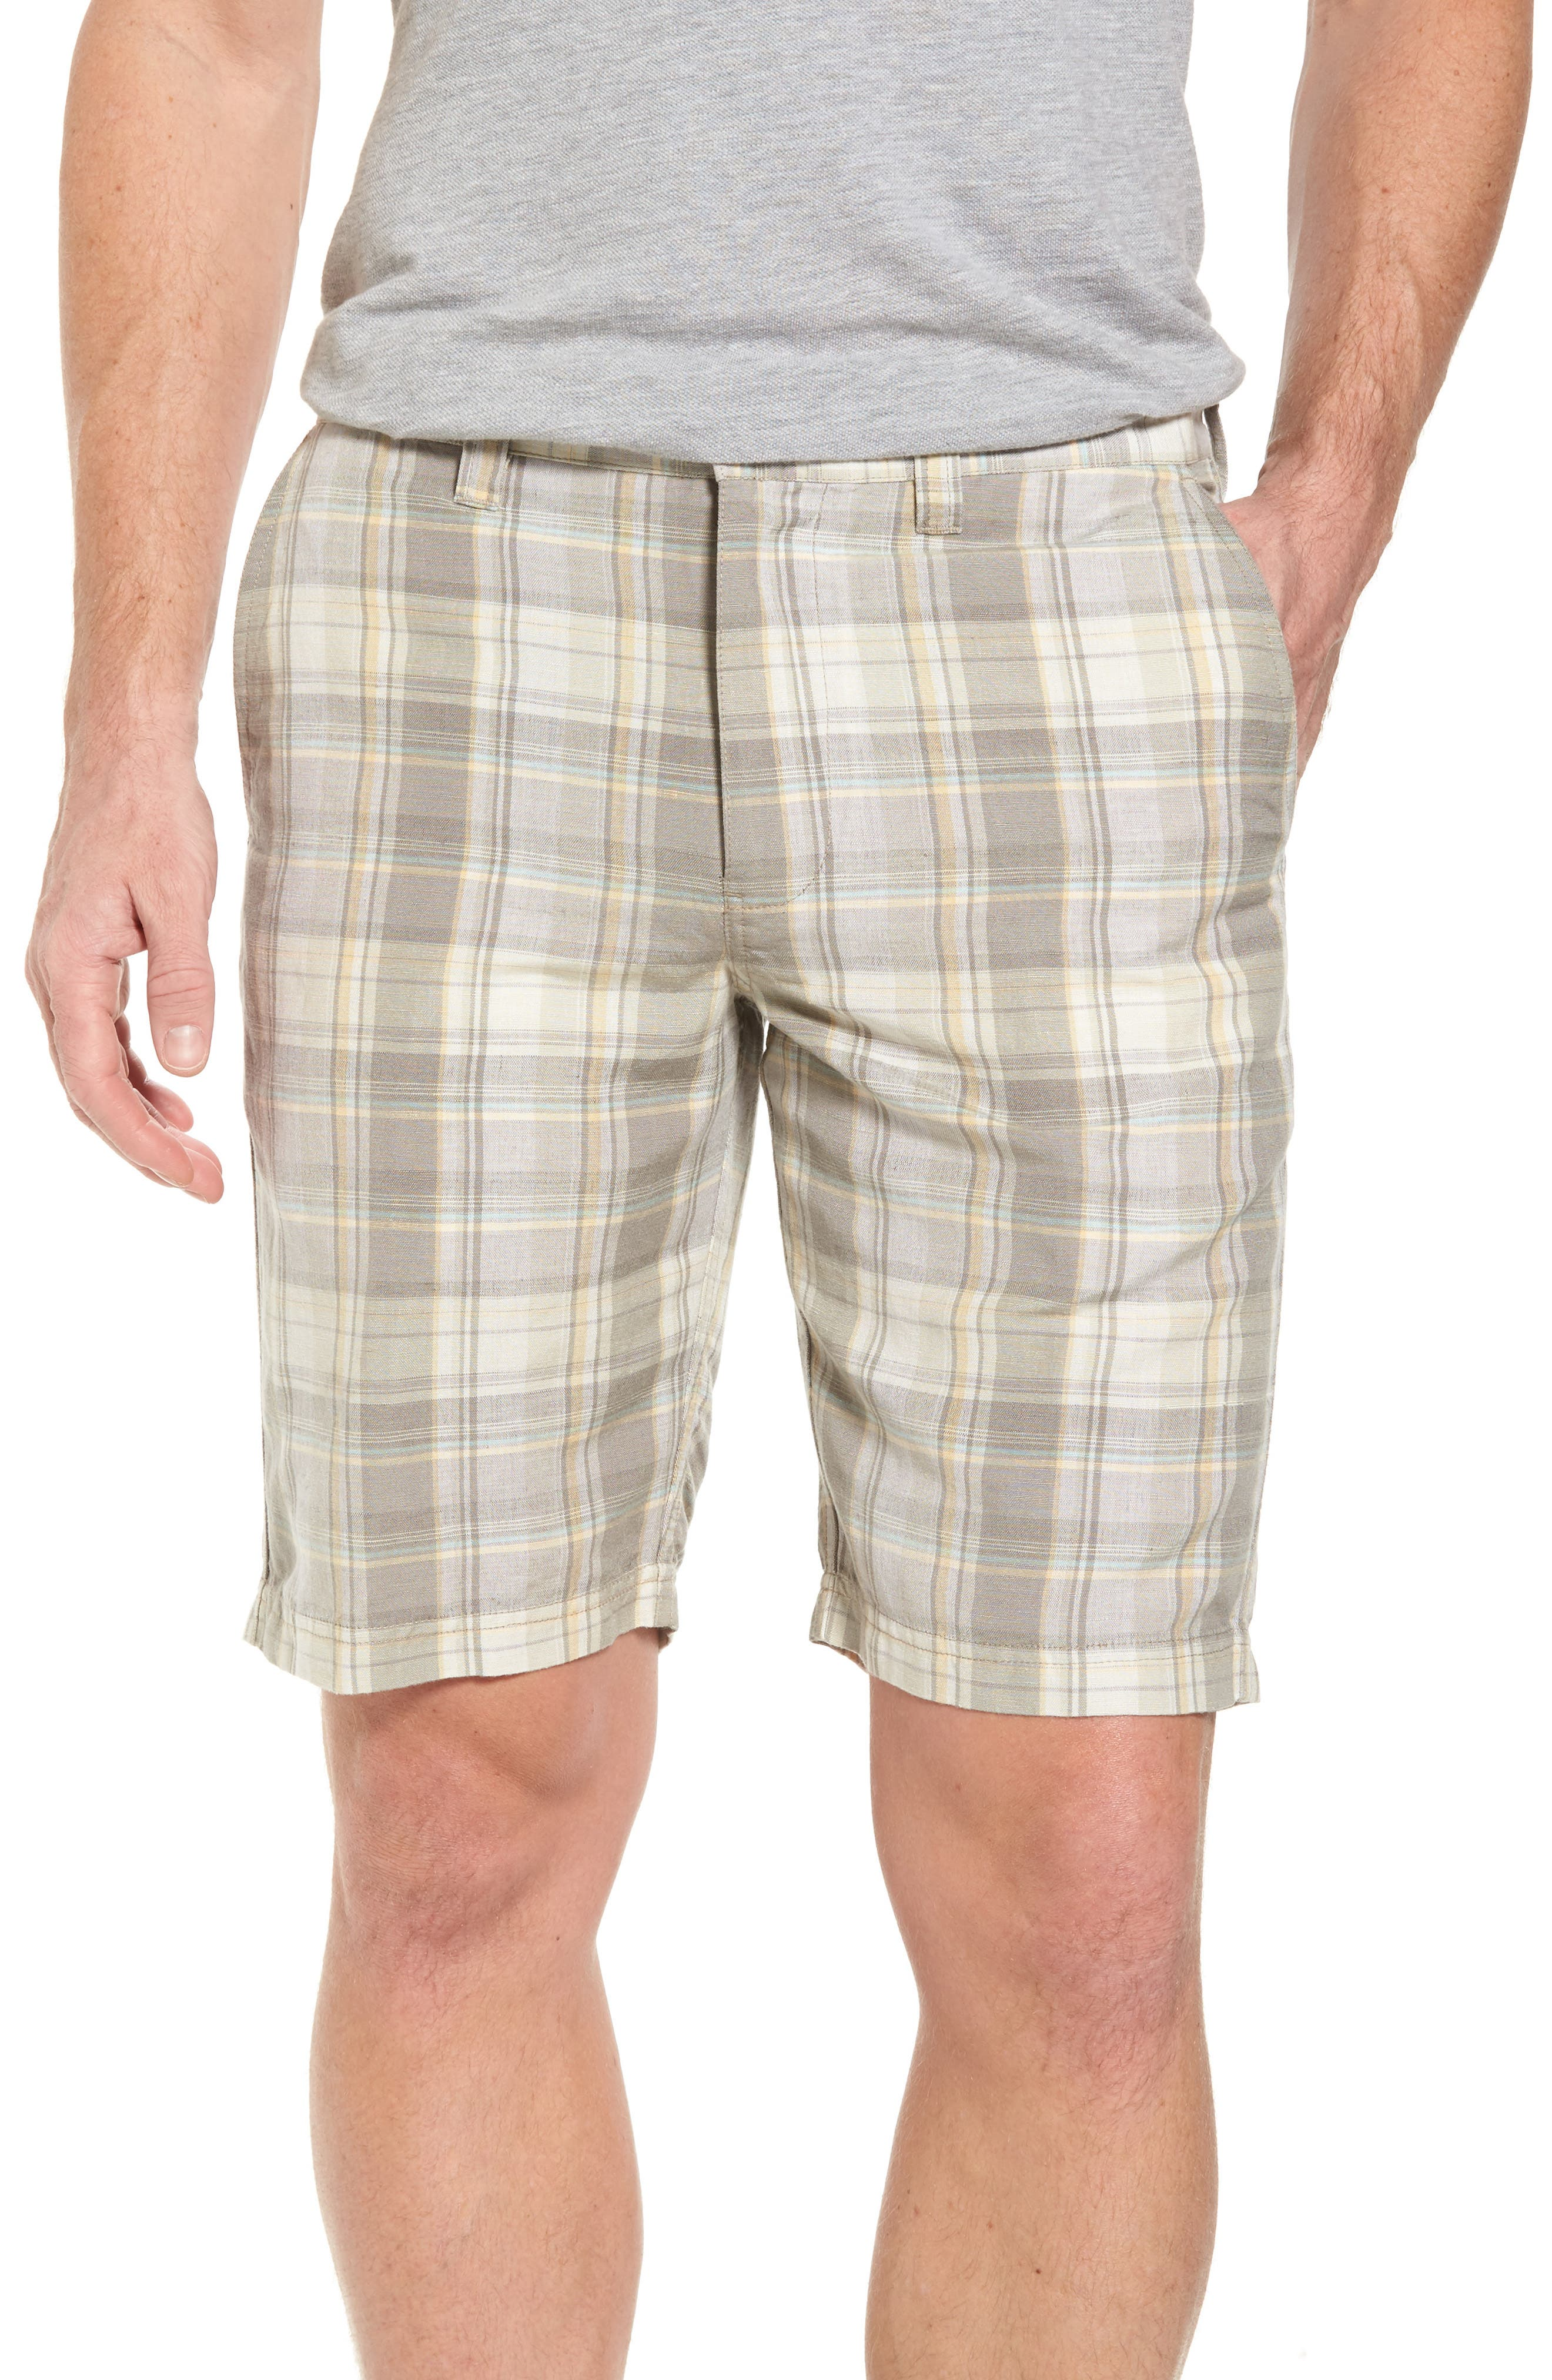 Coastal Dunes Plaid Shorts,                             Main thumbnail 1, color,                             250